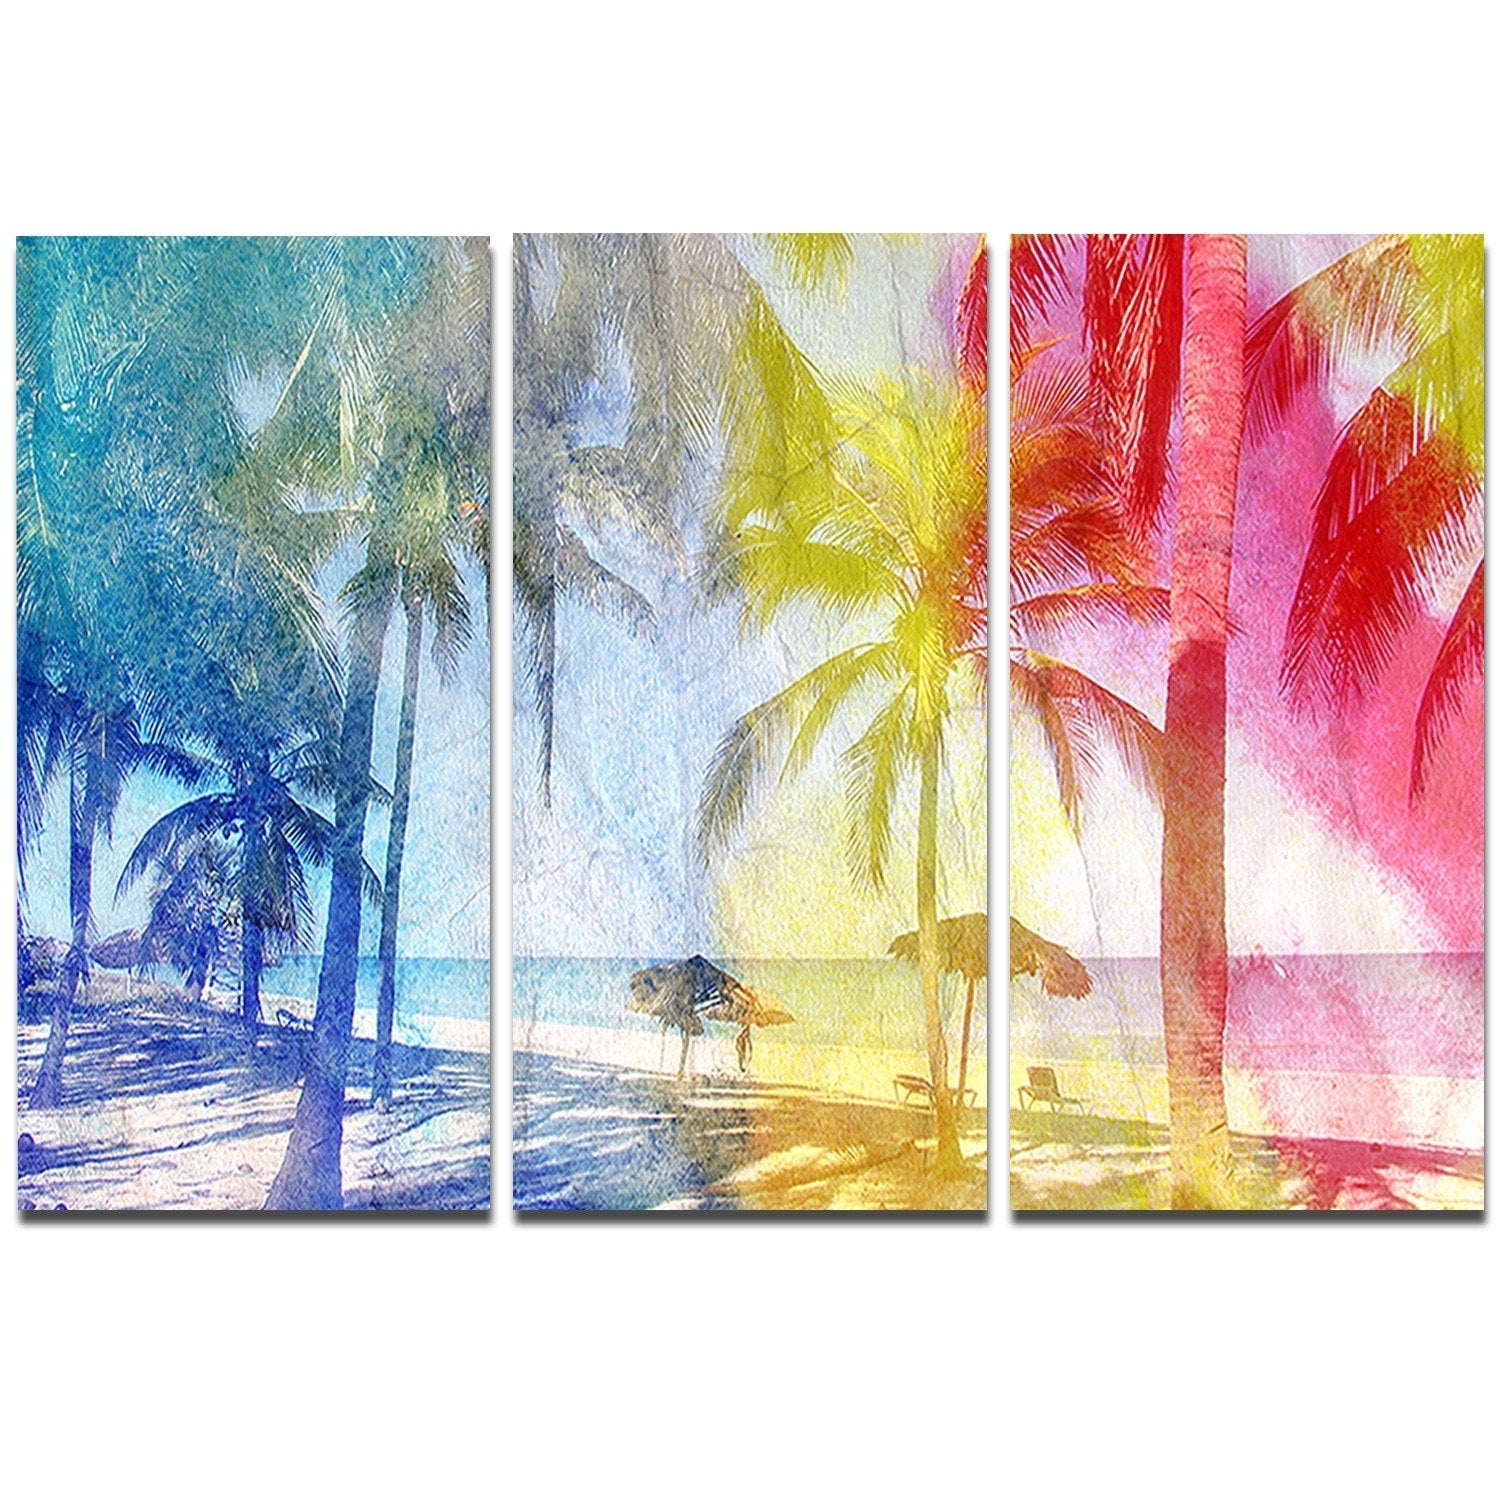 Comfortable Colorful Metal Wall Art Ideas - The Wall Art Decorations ...